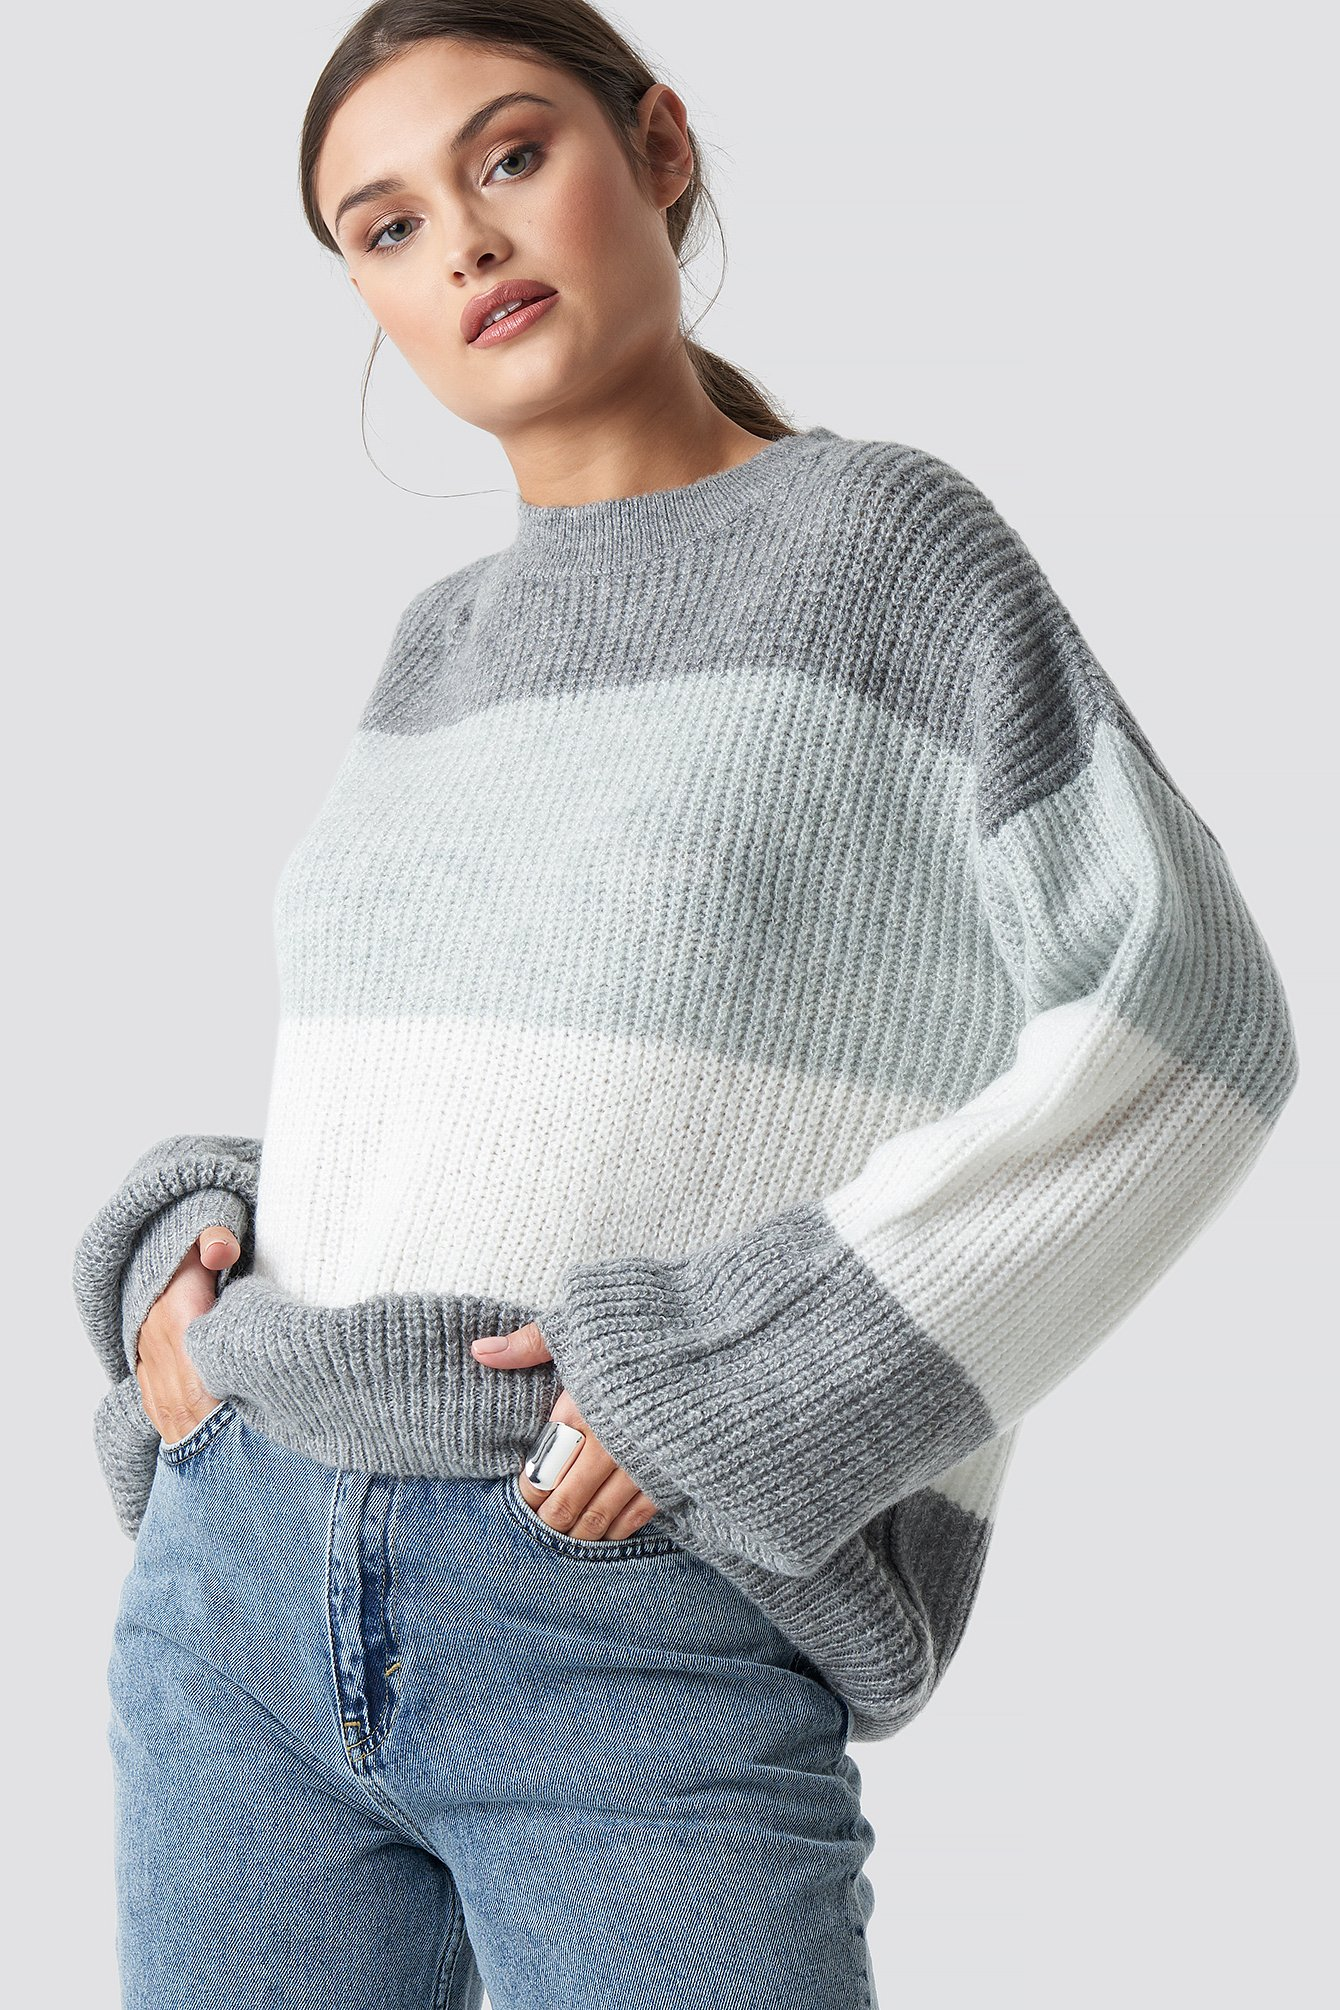 NA-KD Color Striped Balloon Sleeve Knitted Sweater - Grey